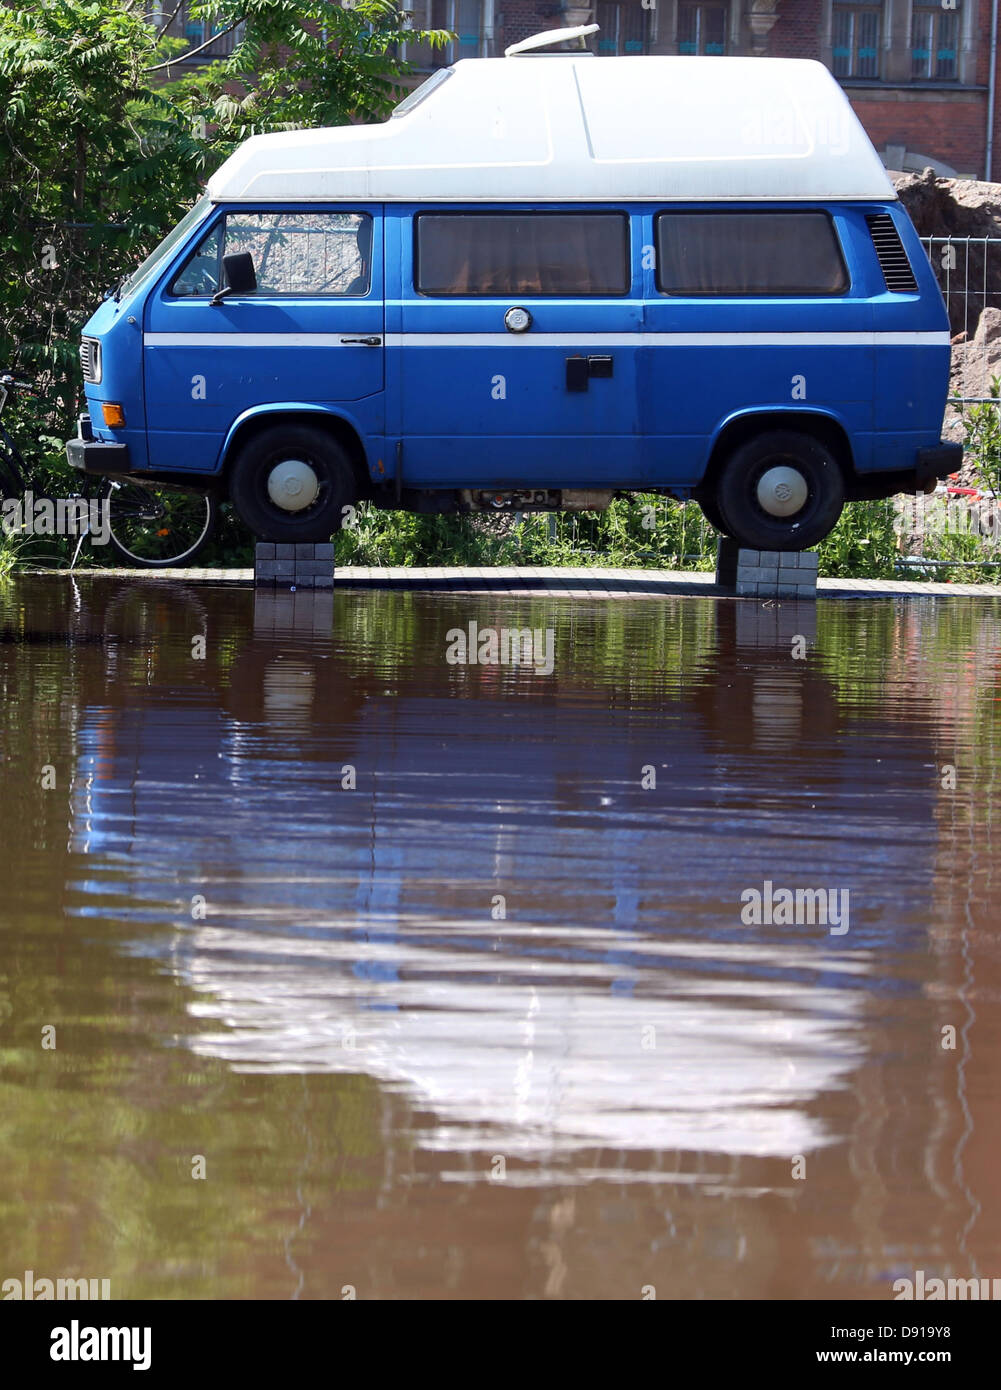 Owners of a VW van have placed their vehicle on stone bases to protect it against flooding in Magdeburg, Germany, - Stock Image